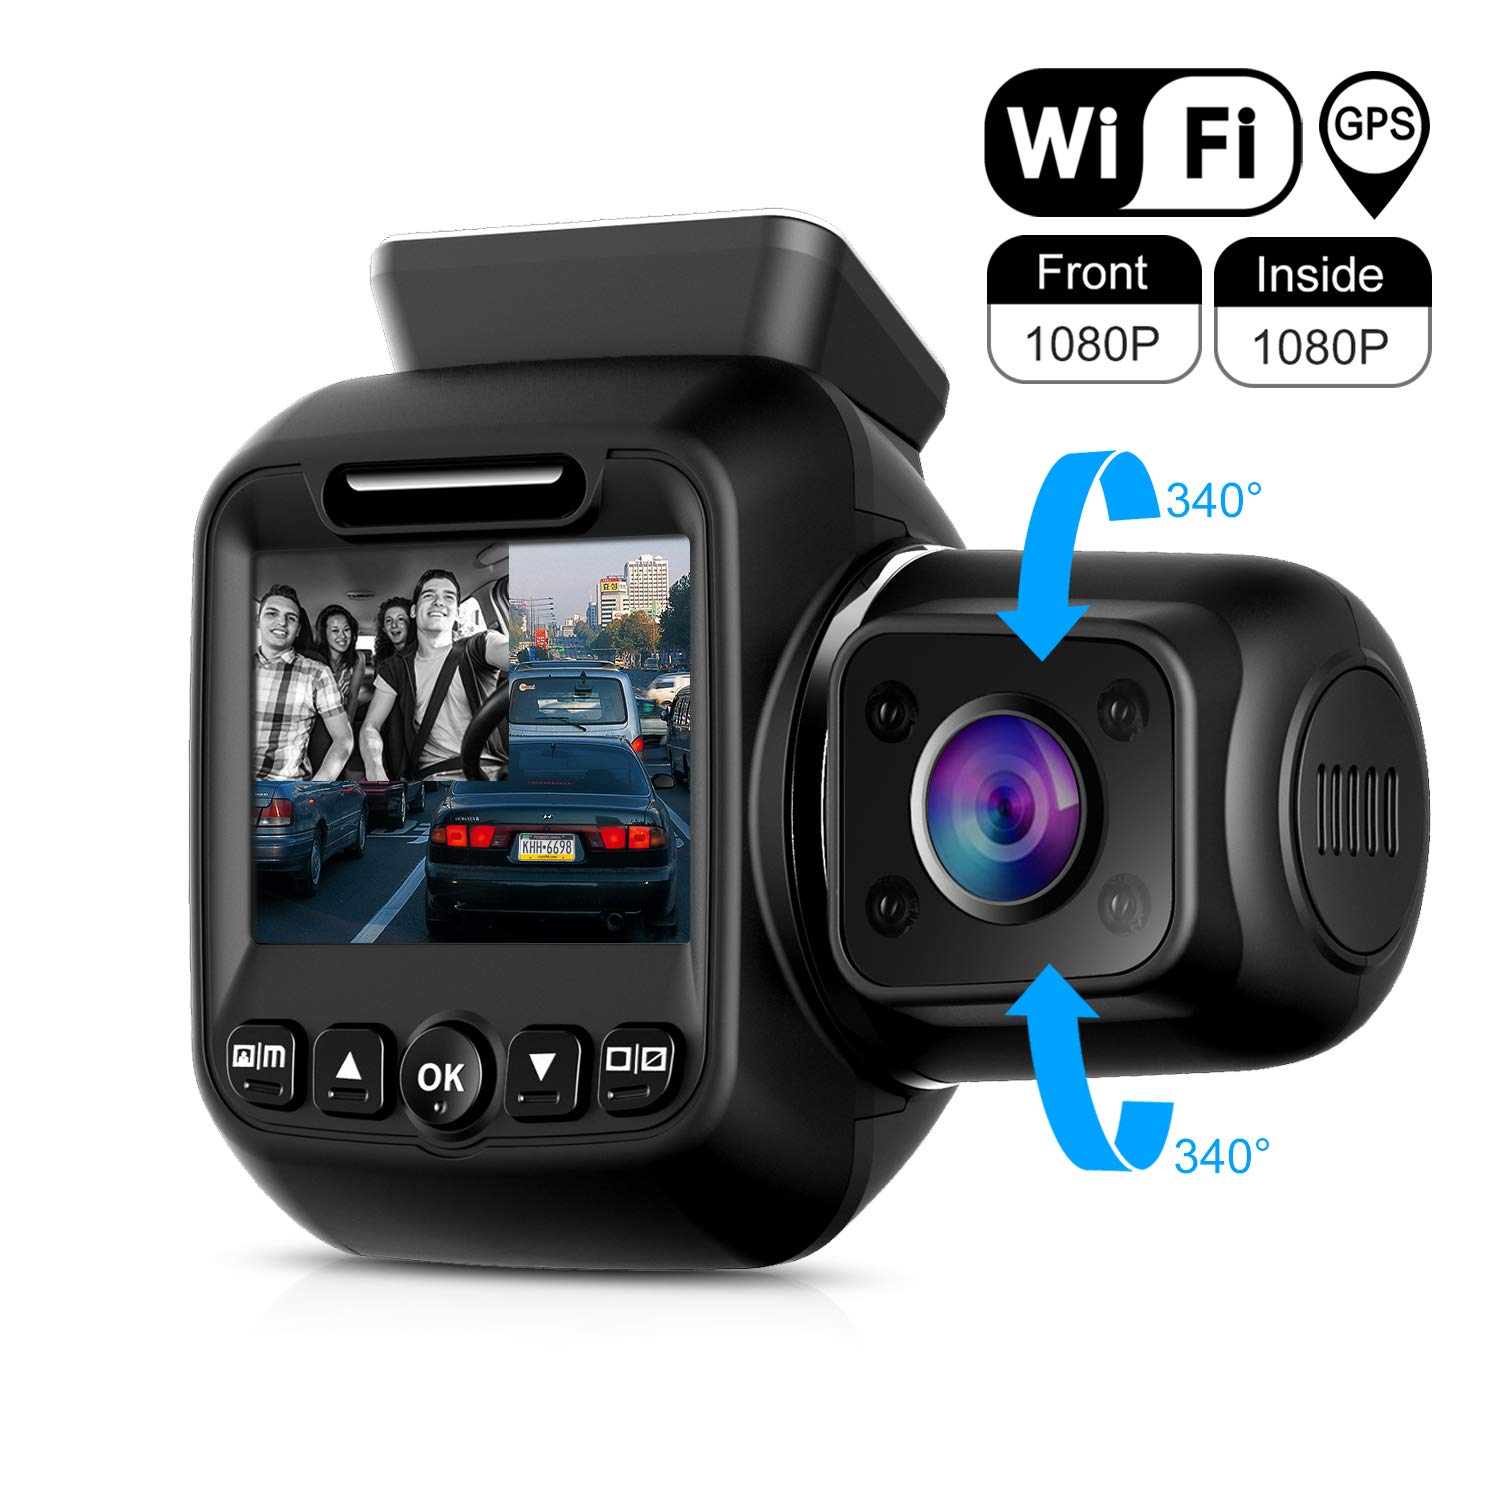 Upgraded Pruveeo P3 Dash Cam with Infrared Night Vision, Built-in GPS, WiFi, Dual 1080P Front and Inside, Dash Camera for Cars Uber Lyft Truck Taxi by Pruveeo (Image #1)